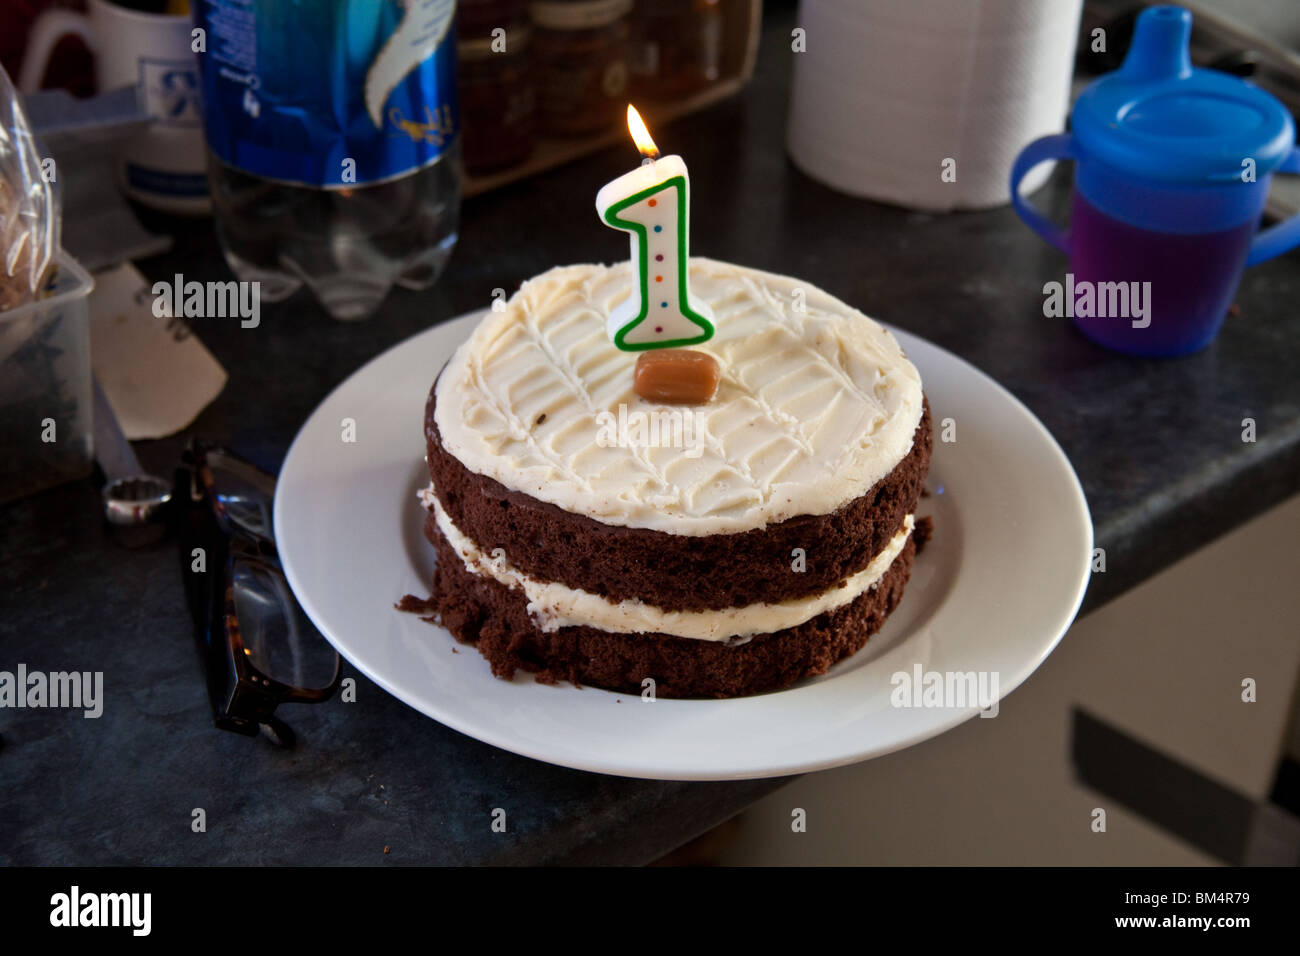 Chocolate Birthday Cake With A Number 1 Candle